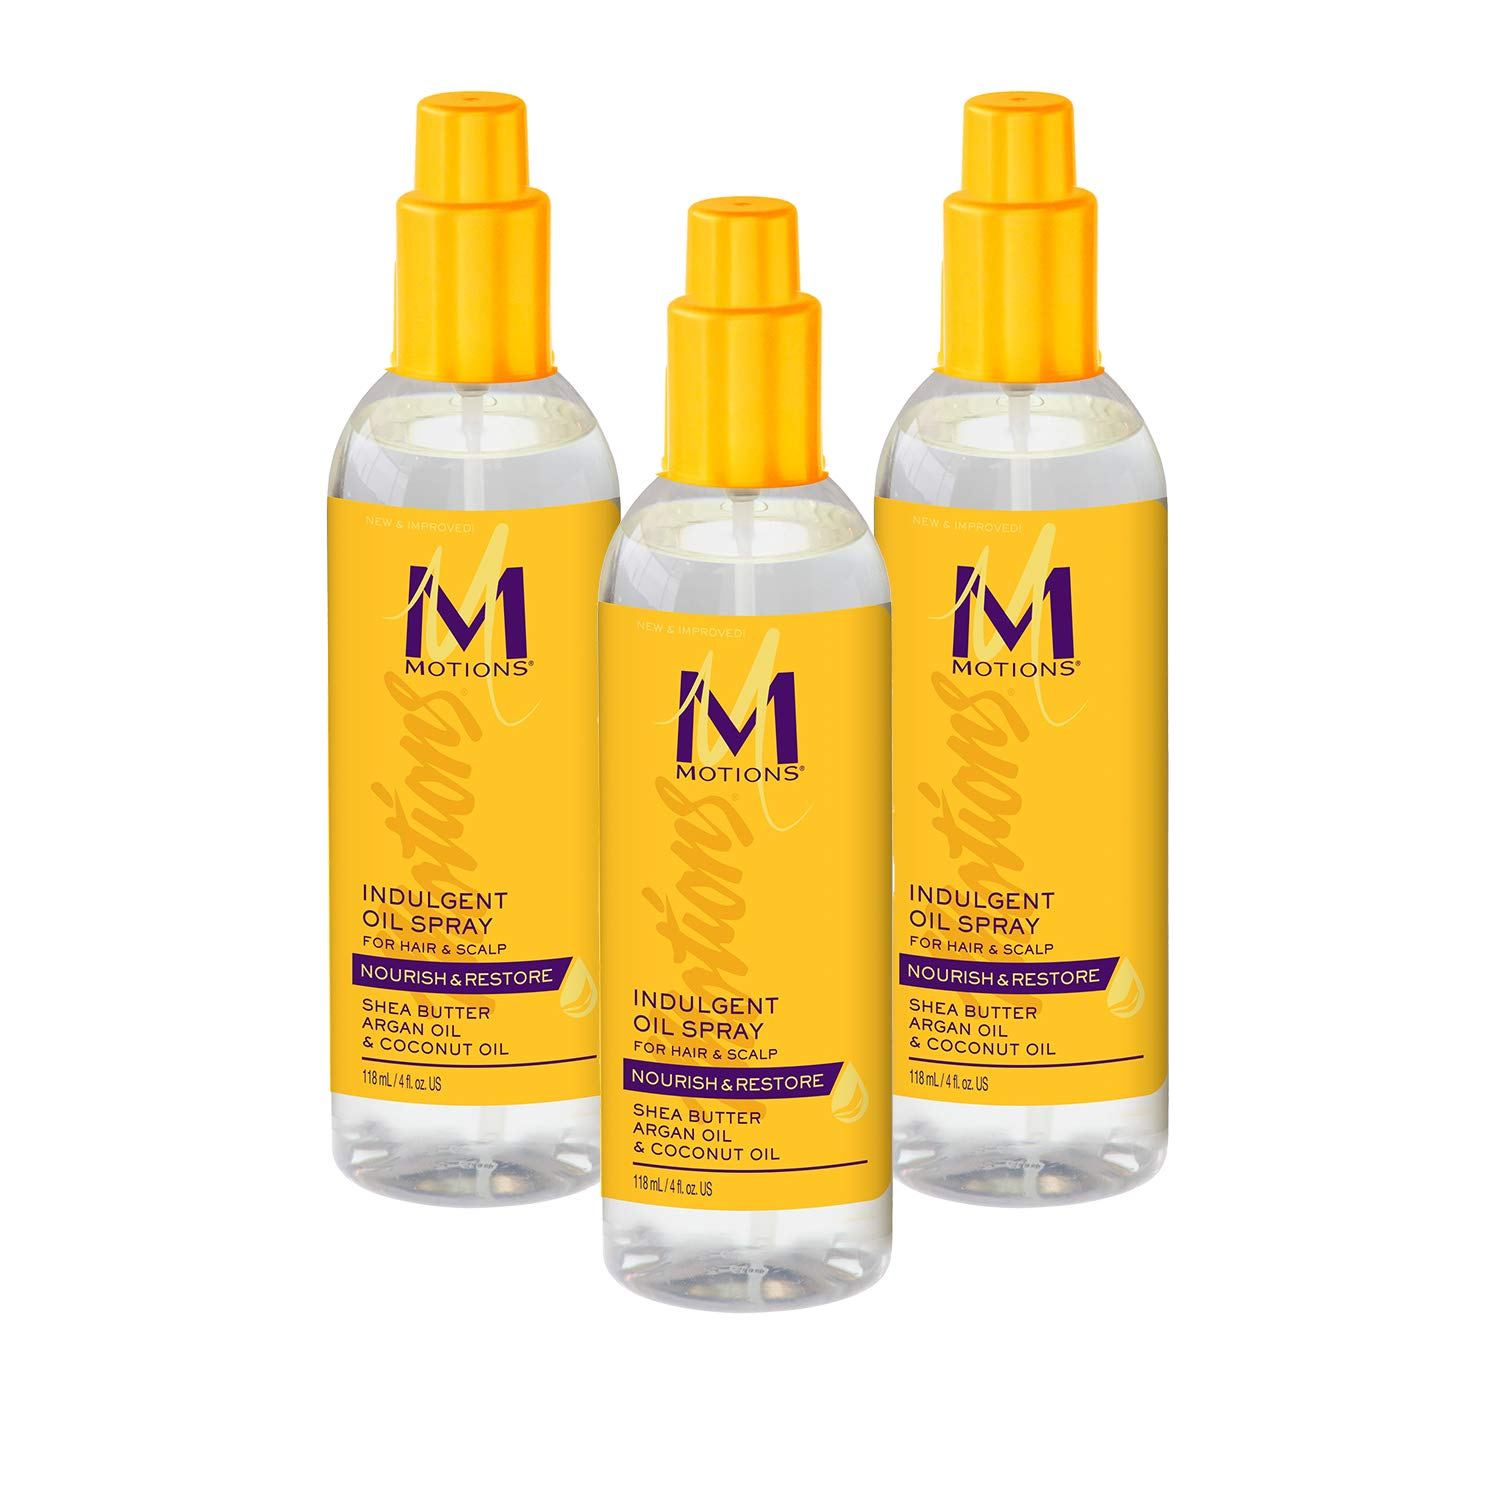 Motions Indulgent Oil Spray For Hair & Scalp, Nourish & Restore, With Shea Butter, Argan Oil & Coconut Oil, 4 Ounce (3 Pack)